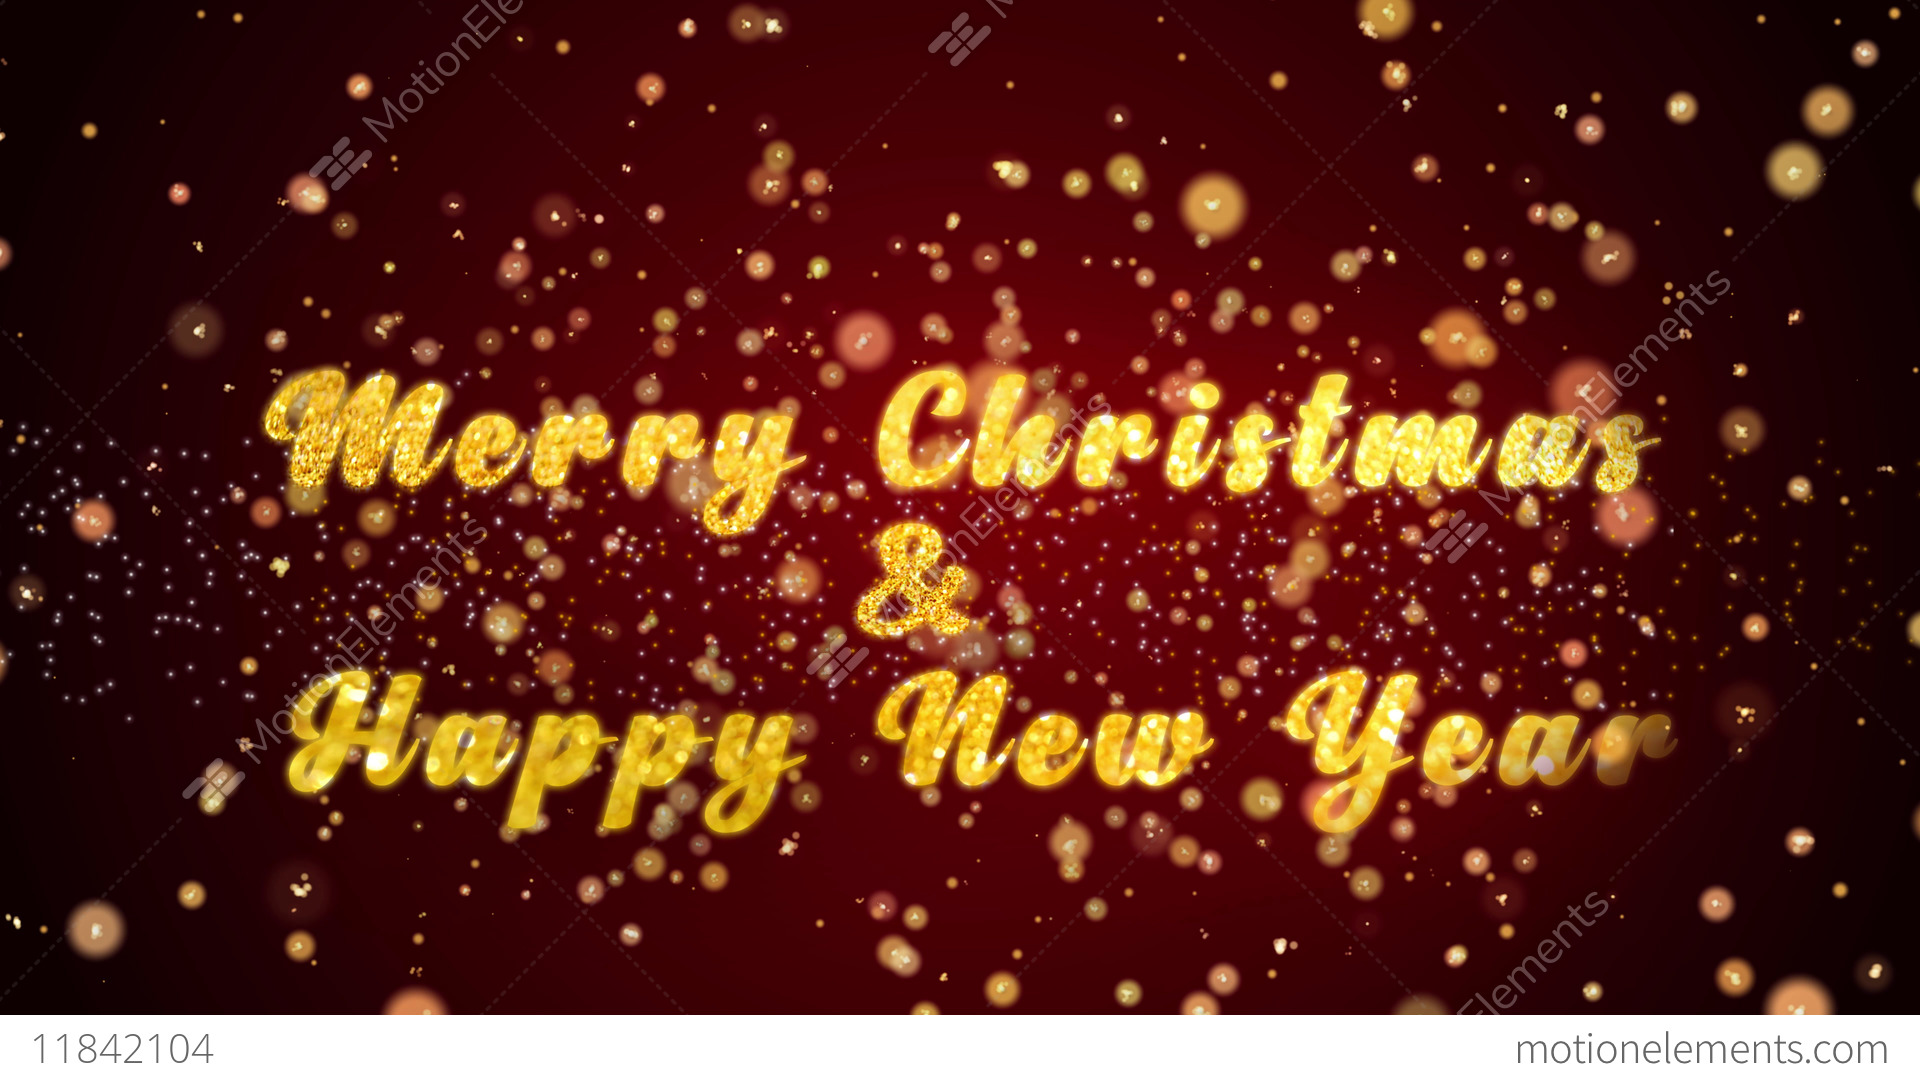 Merry christmas happy new year greeting card text shiny particles merry christmas happy new year greeting card text shiny stock video footage m4hsunfo